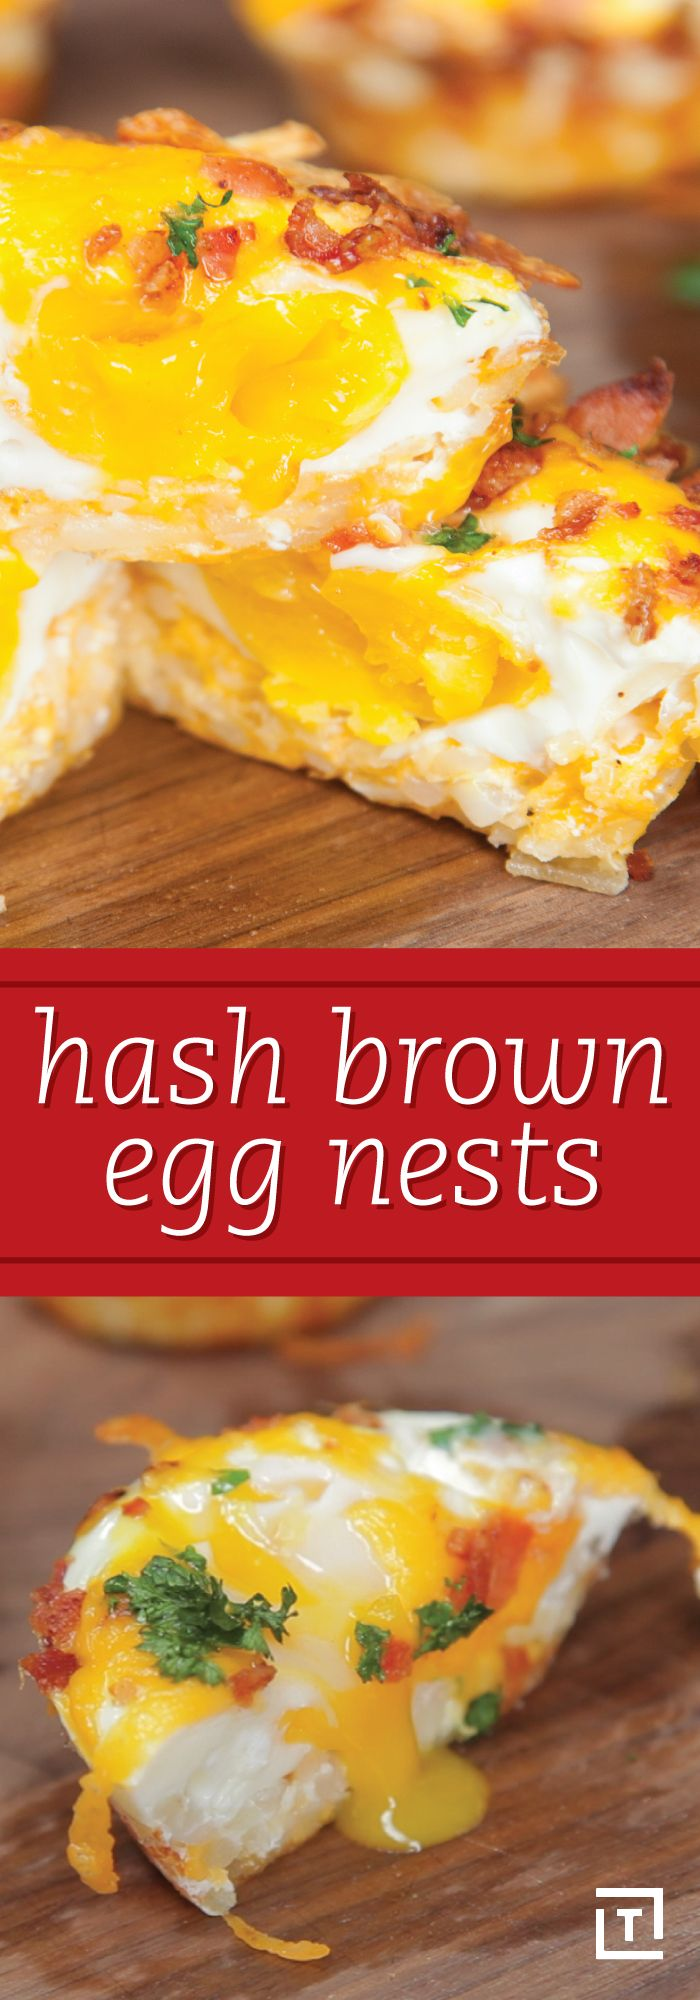 Bacon? Check. Hash browns? Check. Eggs, seasoning, and all the cheese you could possibly want? Also check. We're big fans of efficiency here at Thrillist, so it's easy to see why we're hooked on this easy recipe by Food Steez -- it combines all of our favorite breakfast foods and shrinks them down into a batch of hash brown egg nests. Each one is essentially a miniature breakfast platter unto itself, and they're equally delicious as they are adorable.